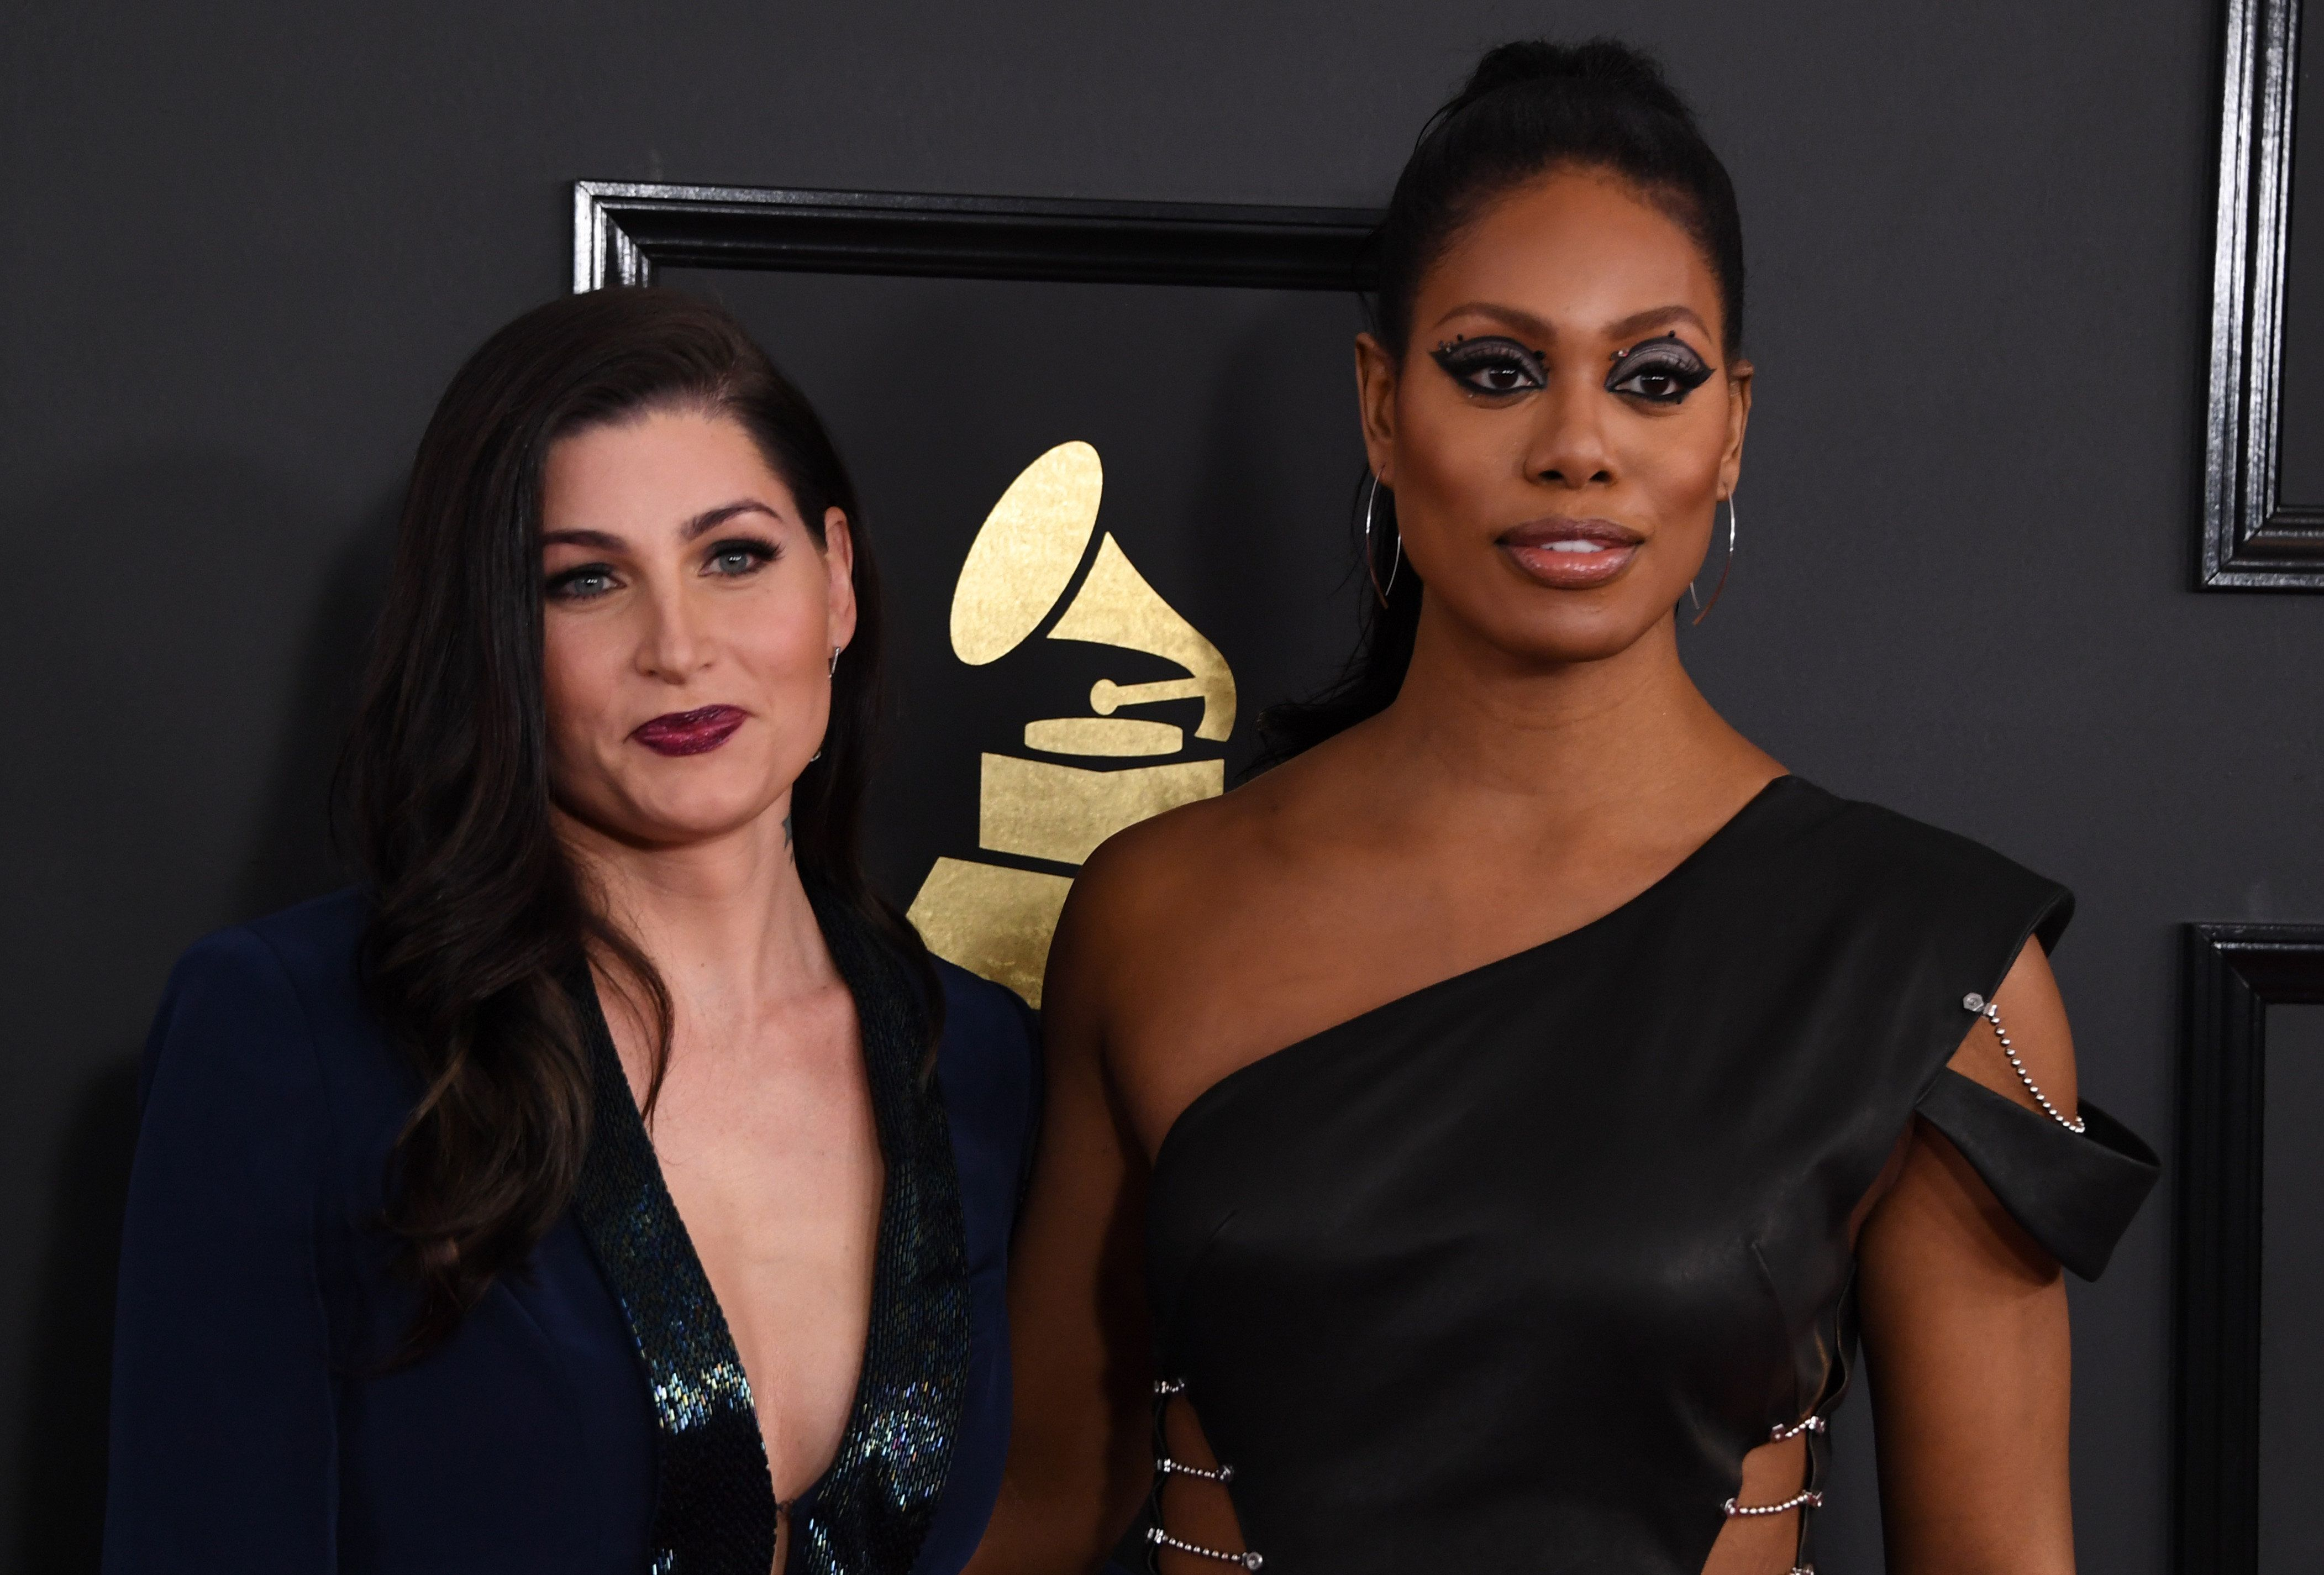 Transgender actresses Trace Lysette and Laverne Cox at the 2017 Grammy Awards.